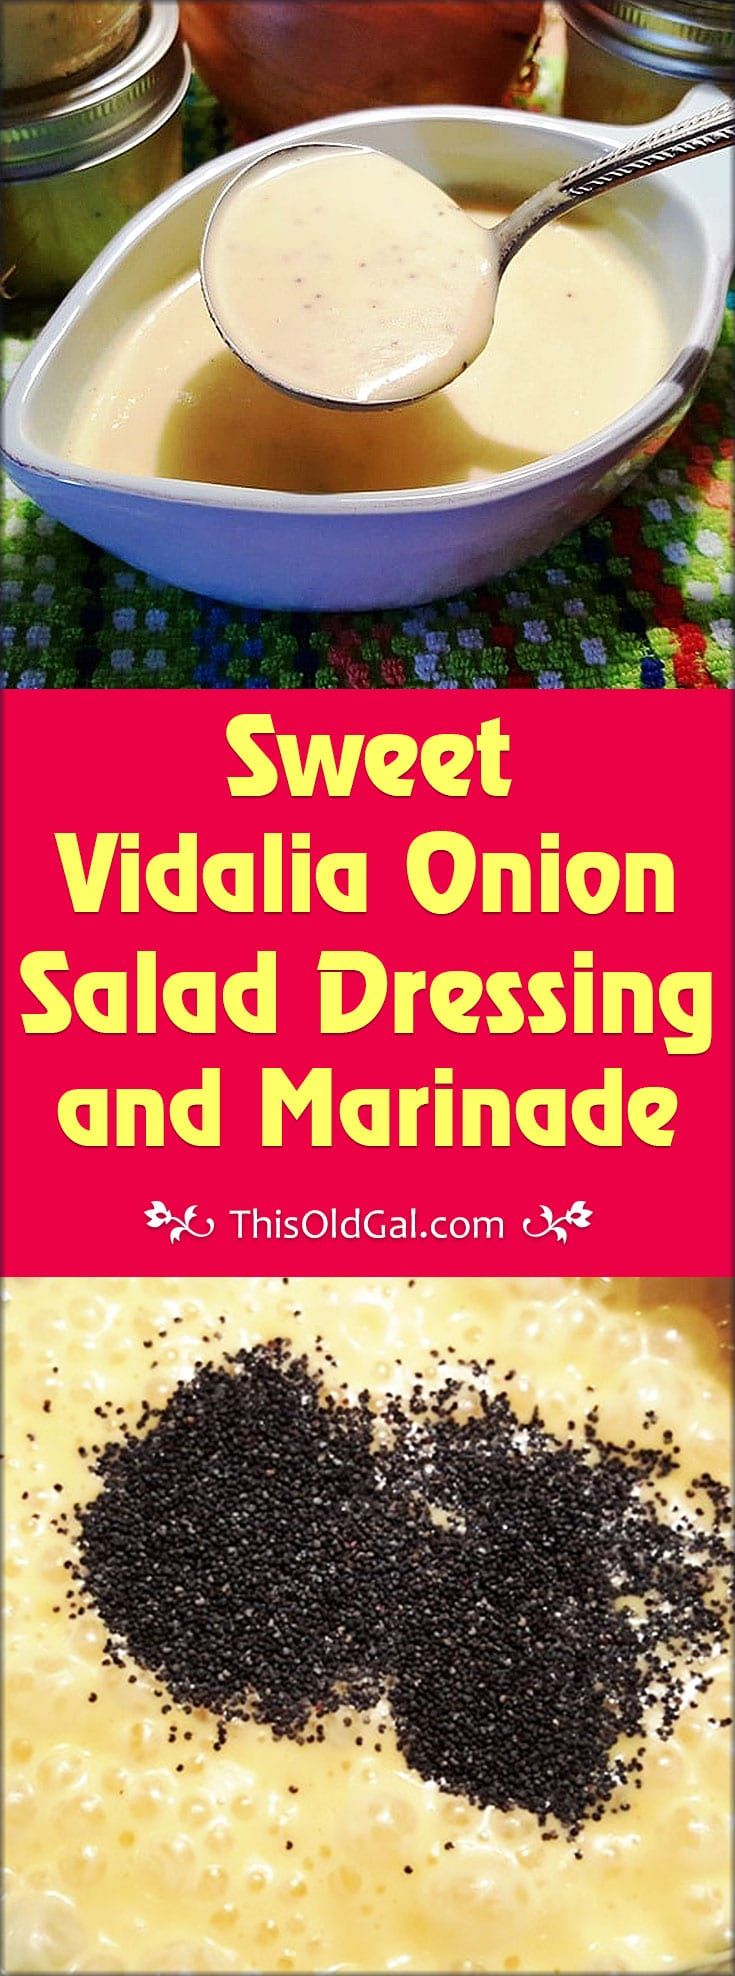 Sweet Vidalia Onion Dressing and Marinade is one of my favorite store bought dressings.  I love it on salads and as a marinade.  via @thisoldgalcooks